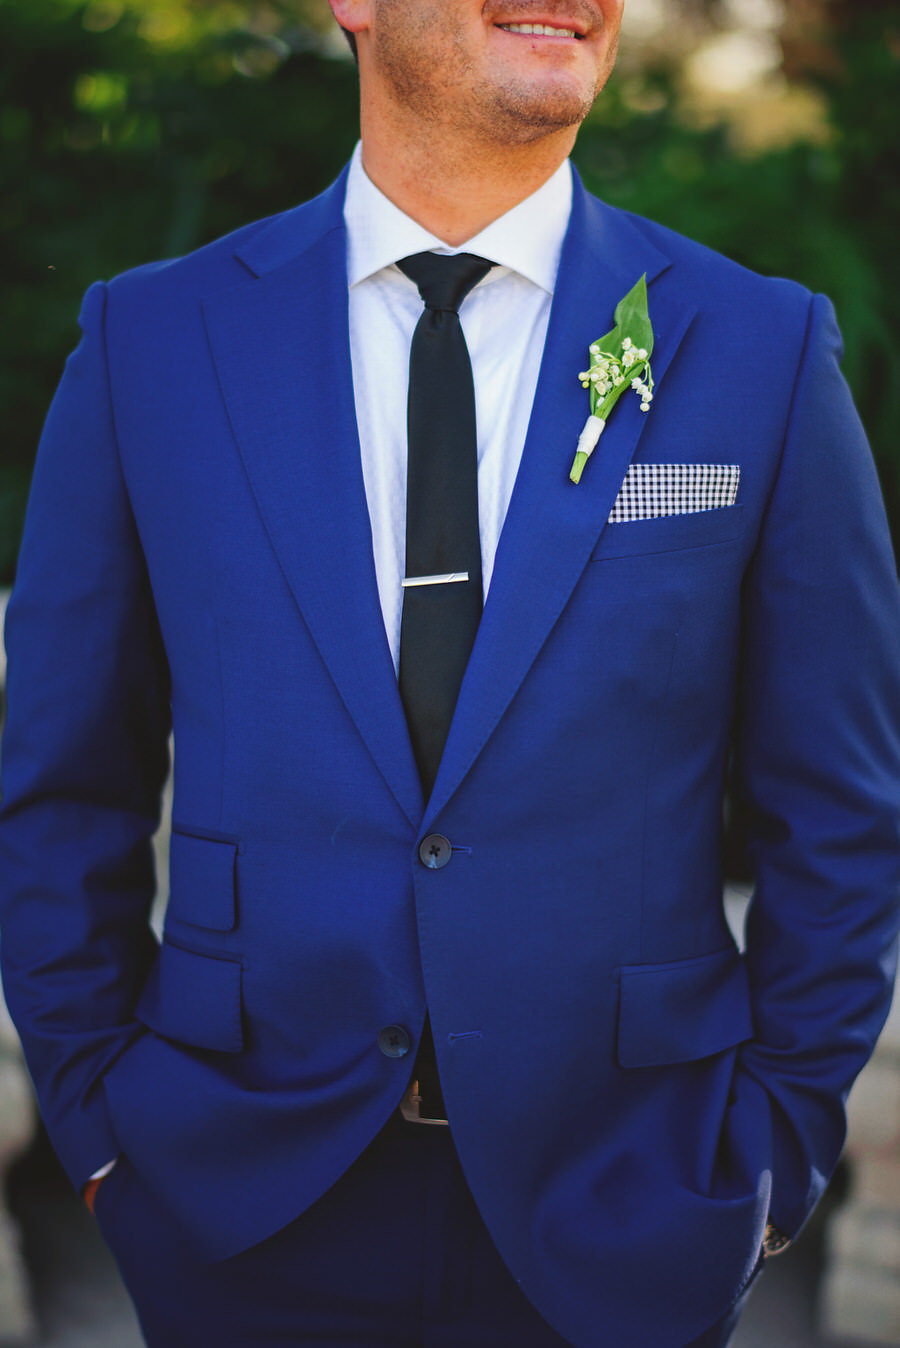 Groom Wedding Portrait in Blue Suit with Checkered Pocket Square